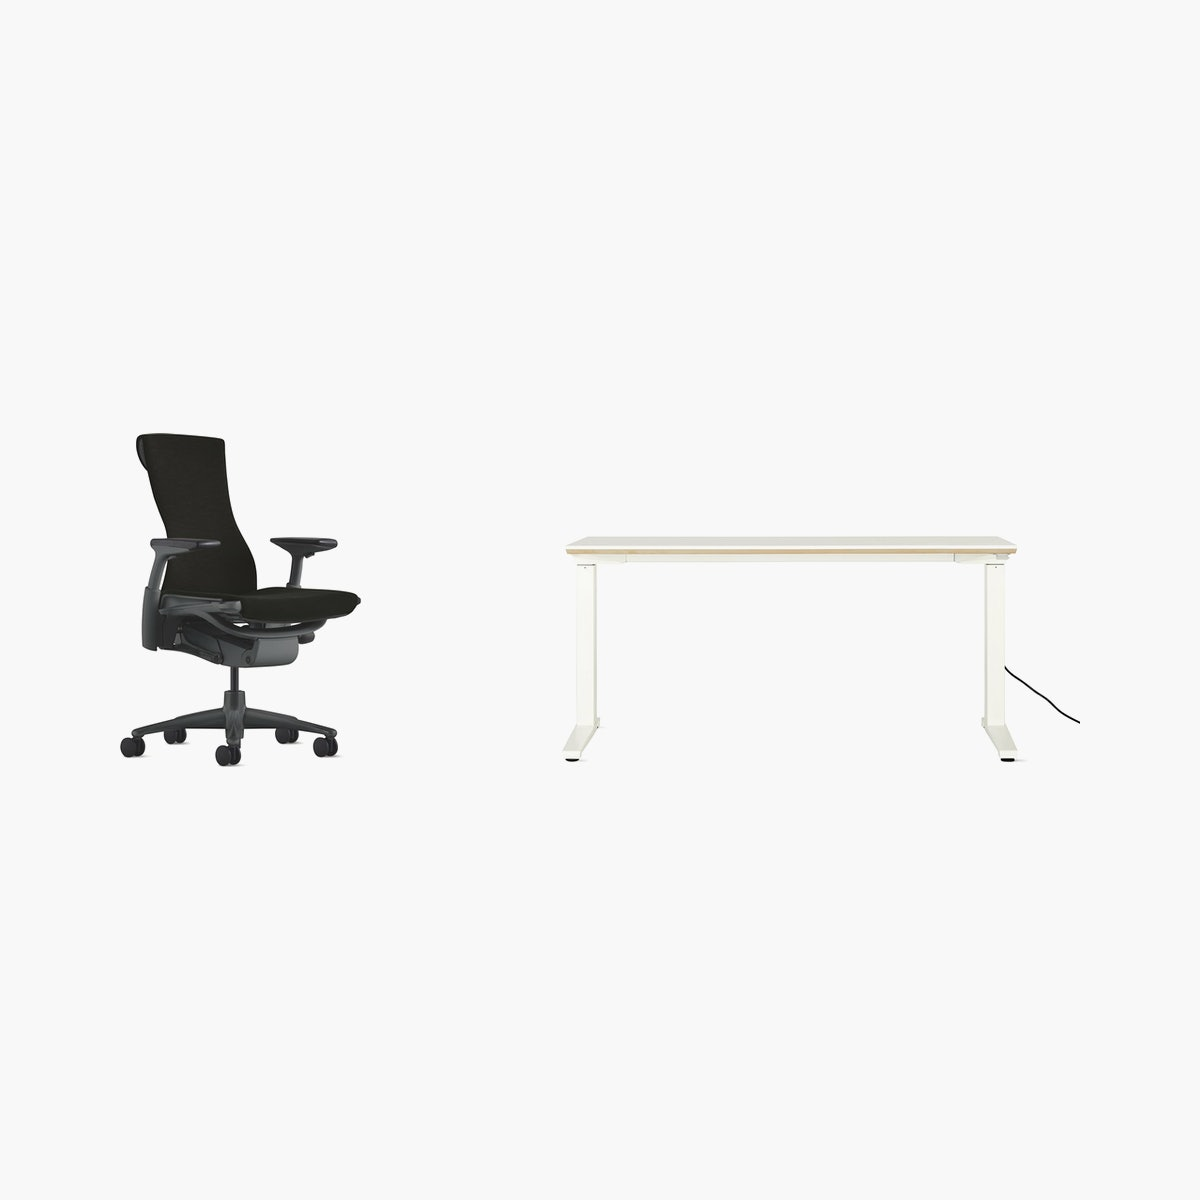 Embody Chair / Renew Desk Office Bundle